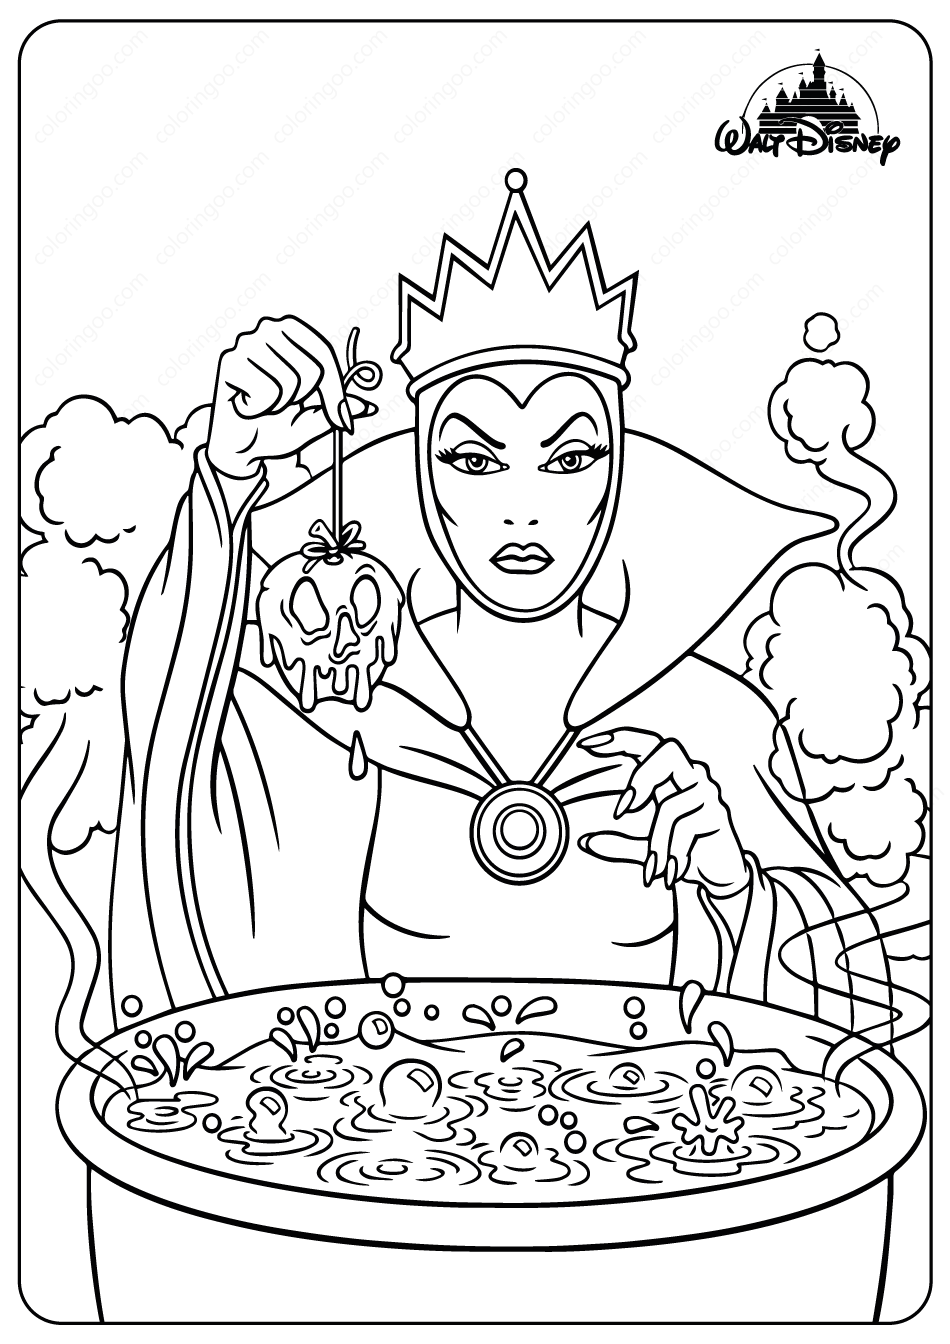 The Evil Queen Coloring Pages | Disney coloring sheets ...